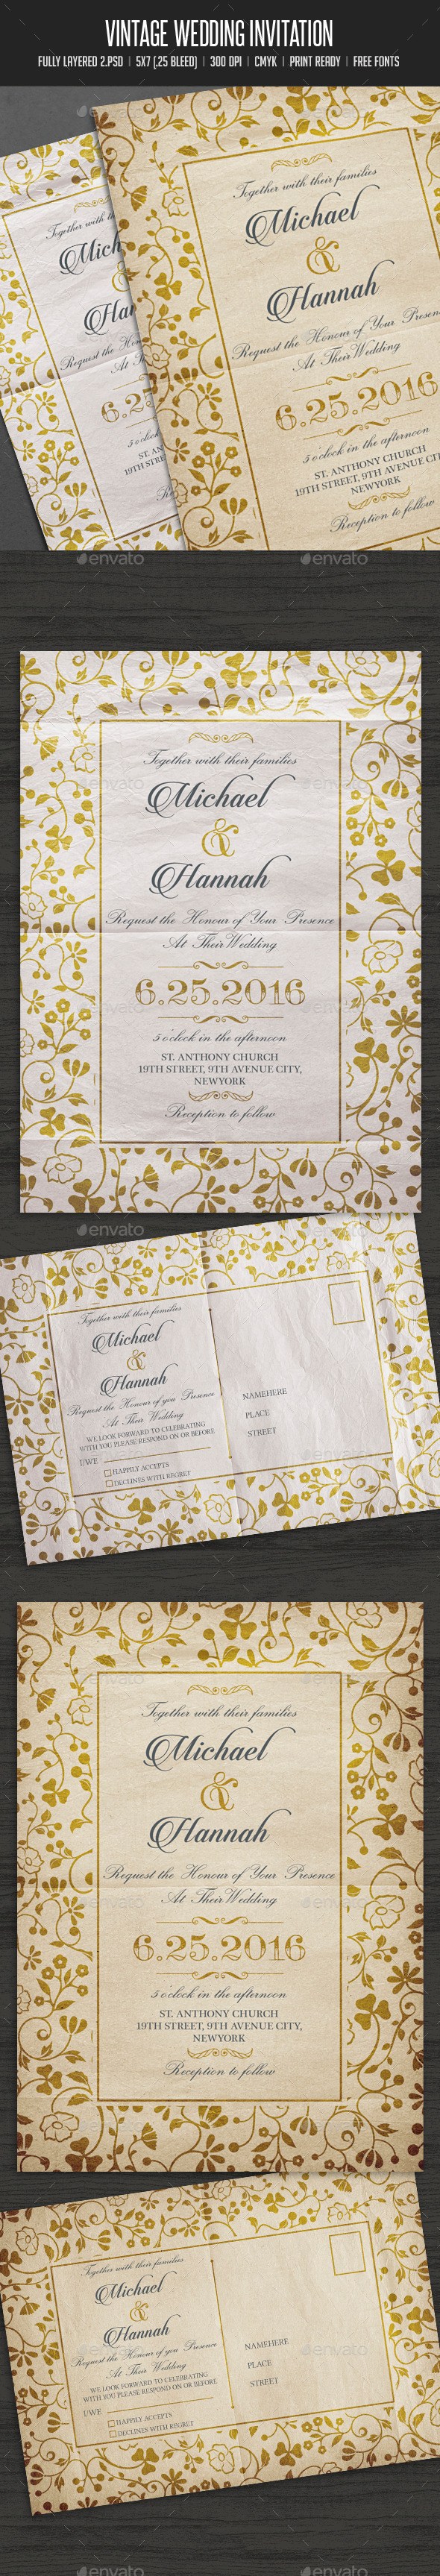 Vintage Wedding Invitation / Card - Cards & Invites Print Templates